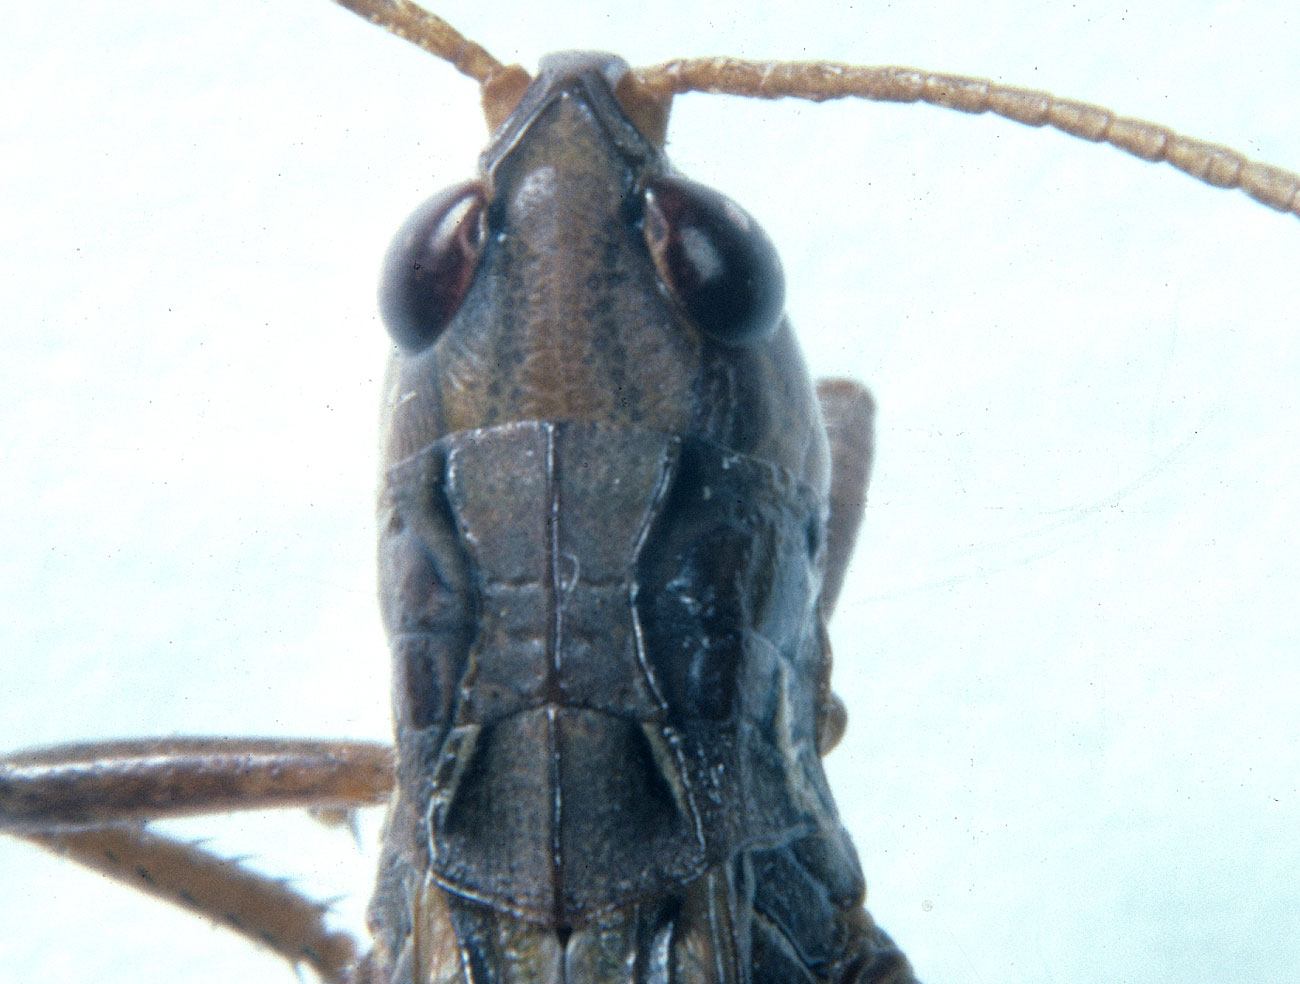 dorsal view of head and pronotum of adult male